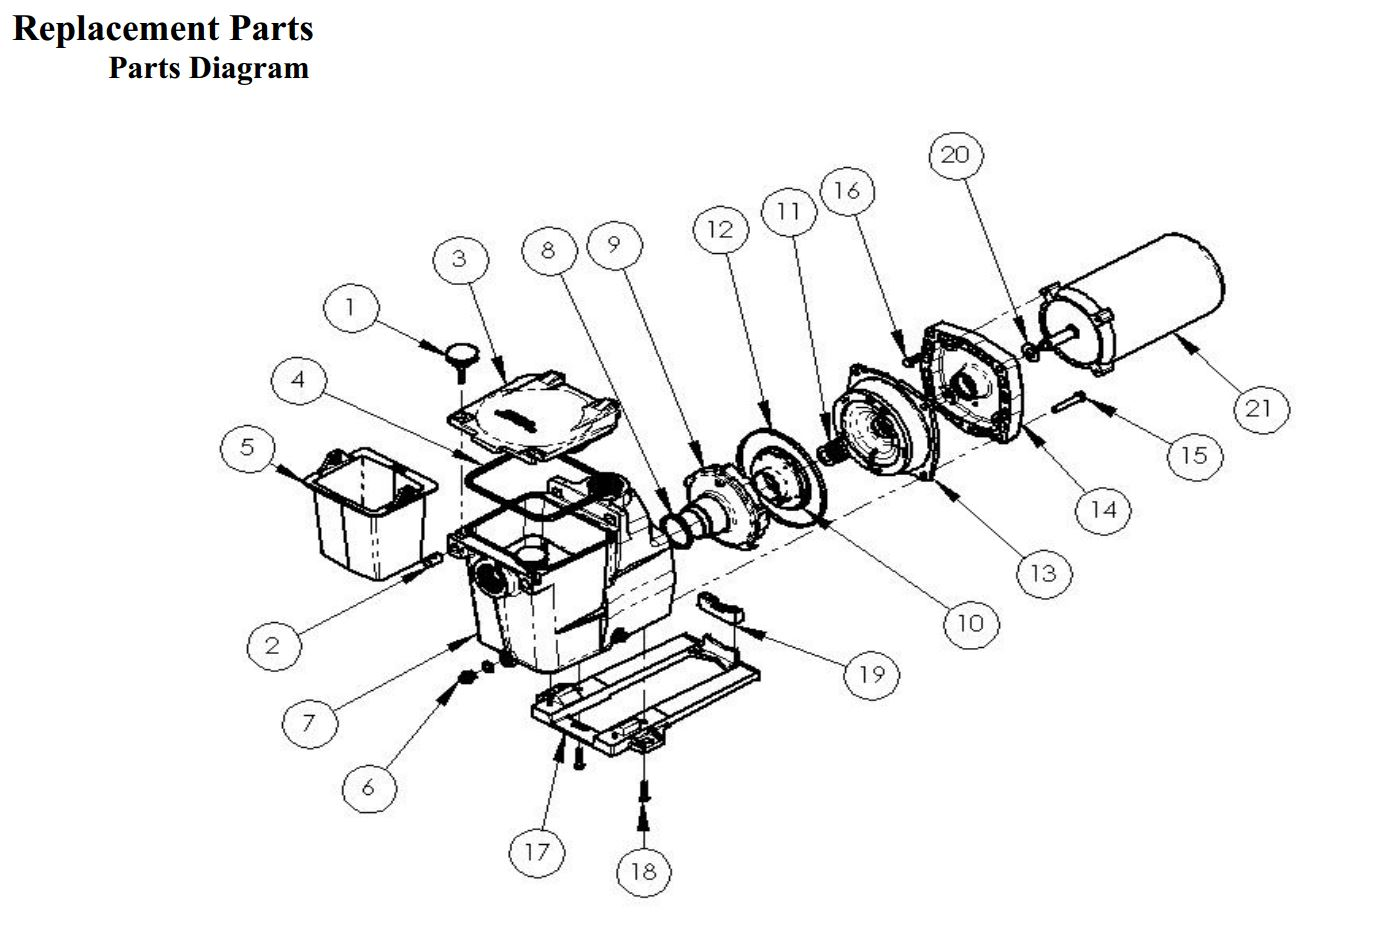 Hayward_Pump_ReplacementParts_WireDiagram._V359521762_ amazon com hayward sp2610x15 super pump 1 5 hp max rated single speck pool pump wiring diagram at nearapp.co